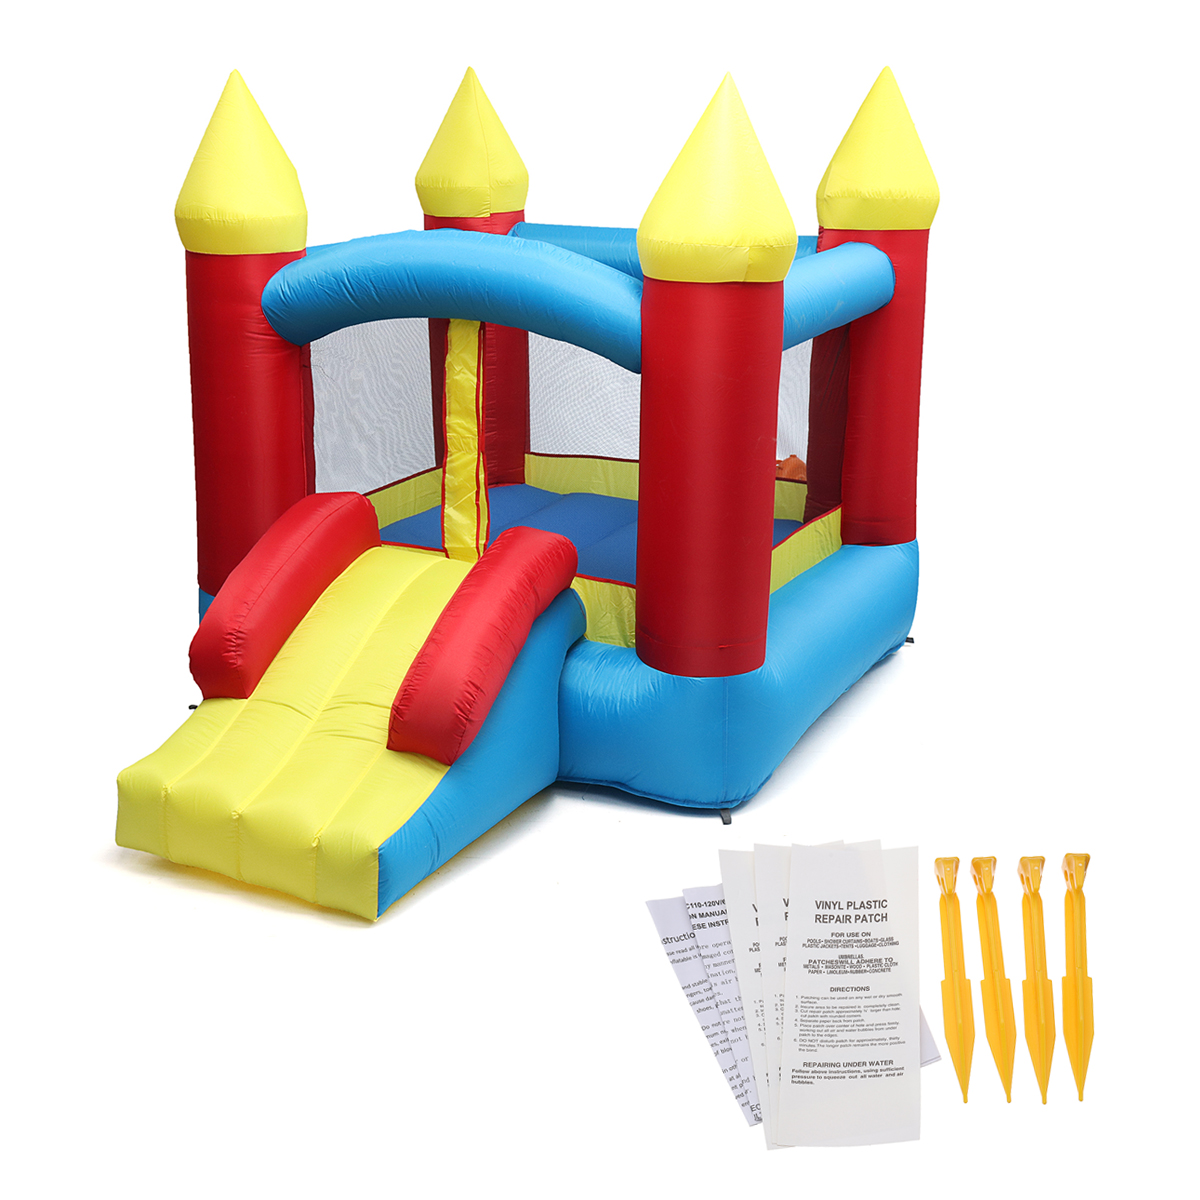 1Set  Inflatable playground  Bouncy Castle Outdoor Indoor Universal  Trampoline Inflatable Castle Playing Games for Kids Gift1Set  Inflatable playground  Bouncy Castle Outdoor Indoor Universal  Trampoline Inflatable Castle Playing Games for Kids Gift